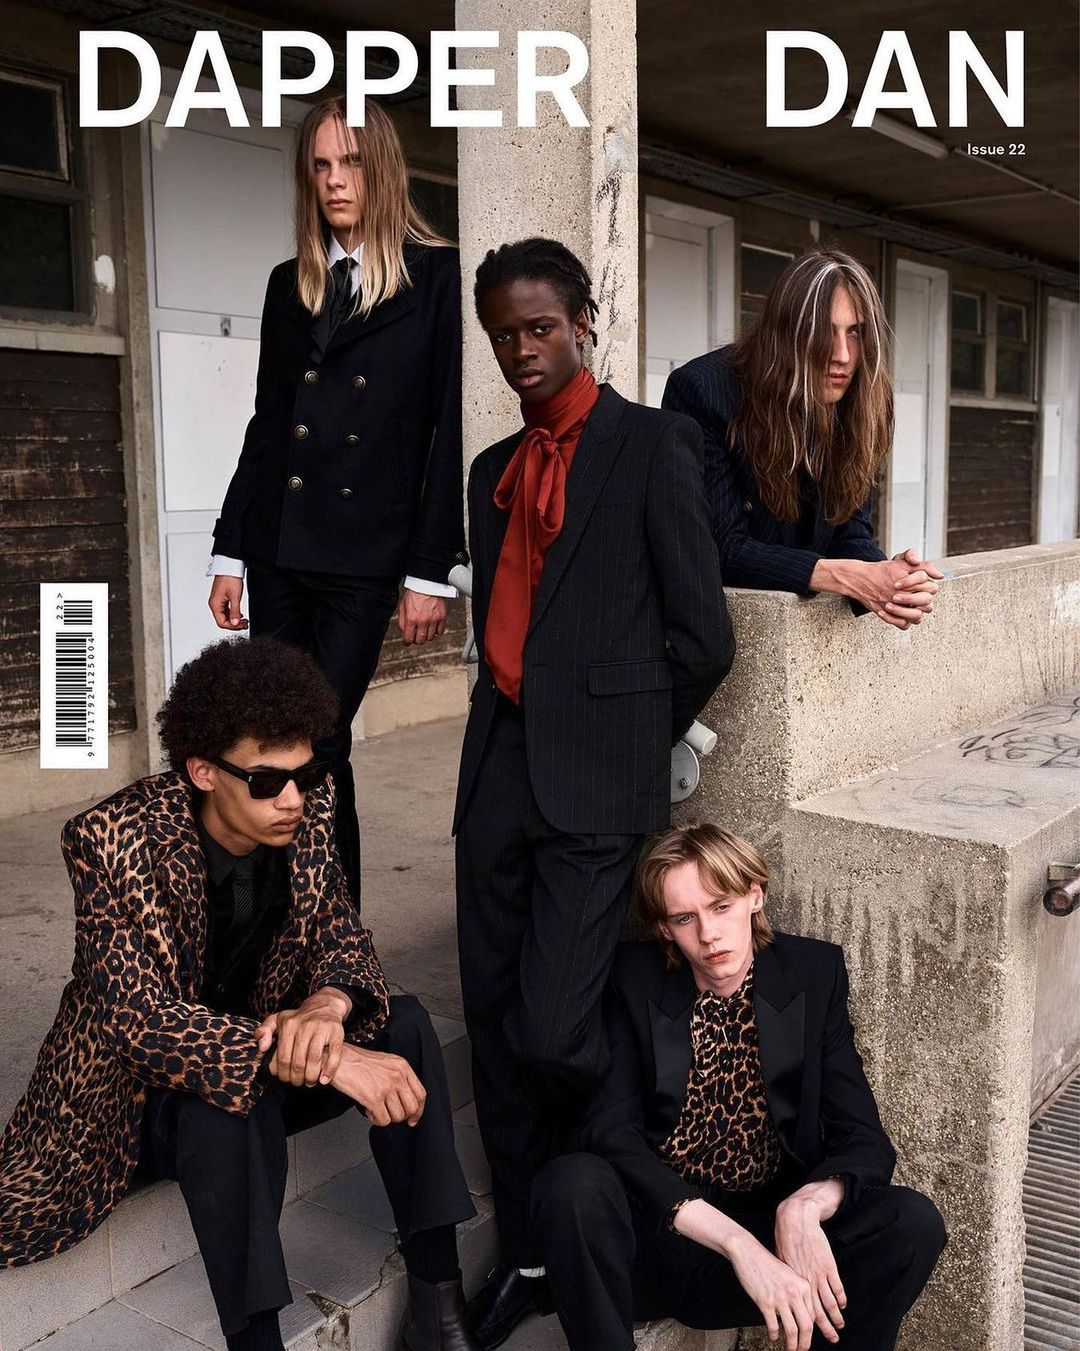 Dapper Dan Magazine - Saint Laurent special cover story